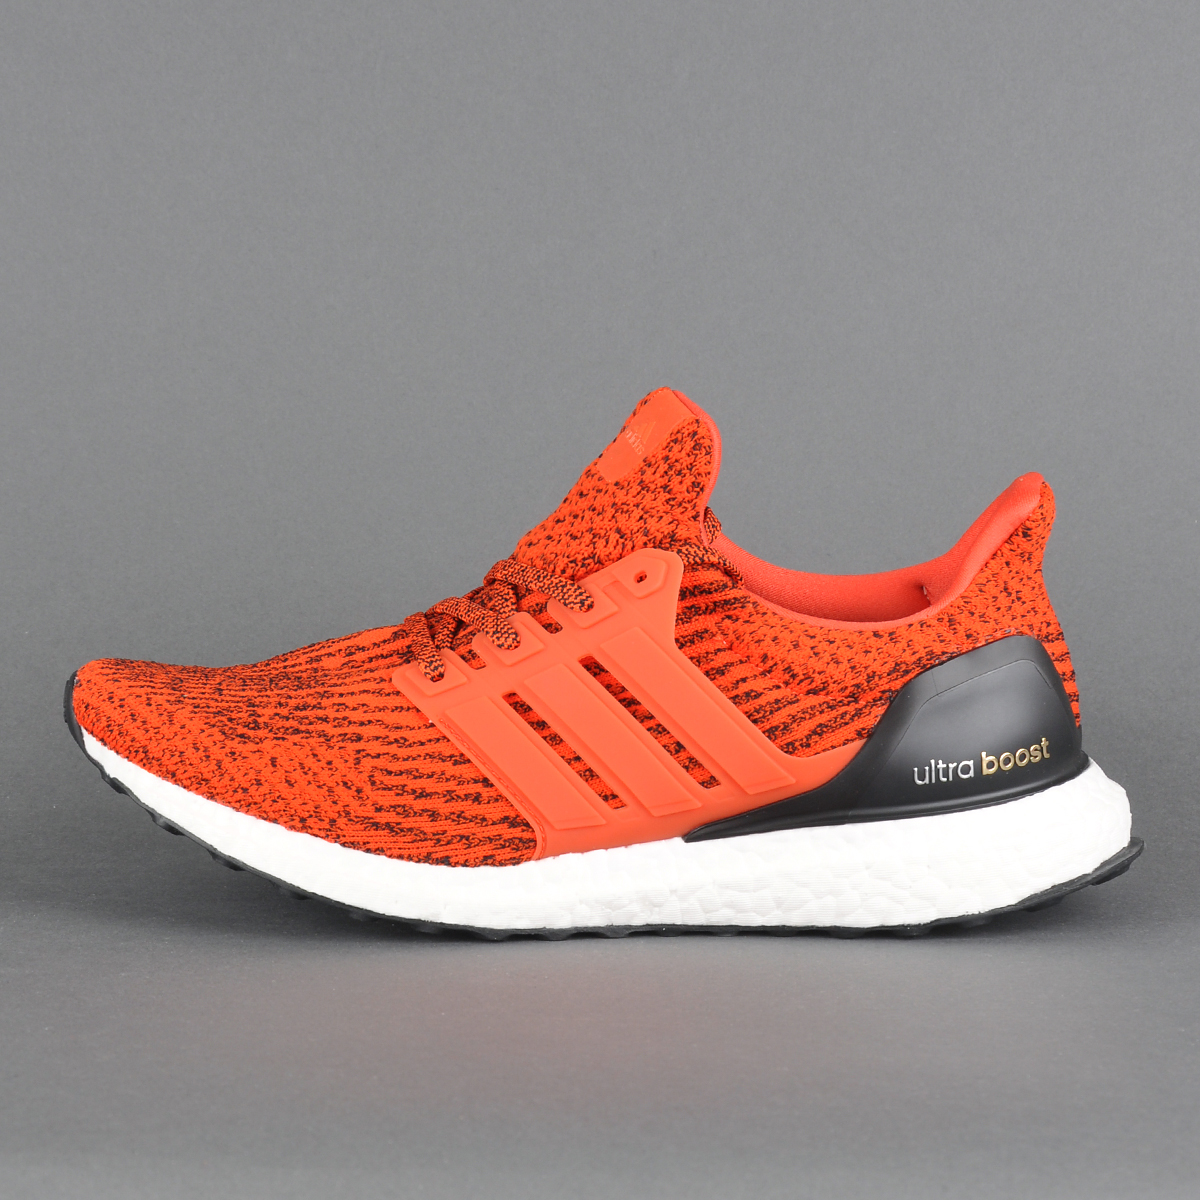 033e67d00 ... sale wholesale adidas ultra boost 3.0 energy red black. 0f5c1 be502